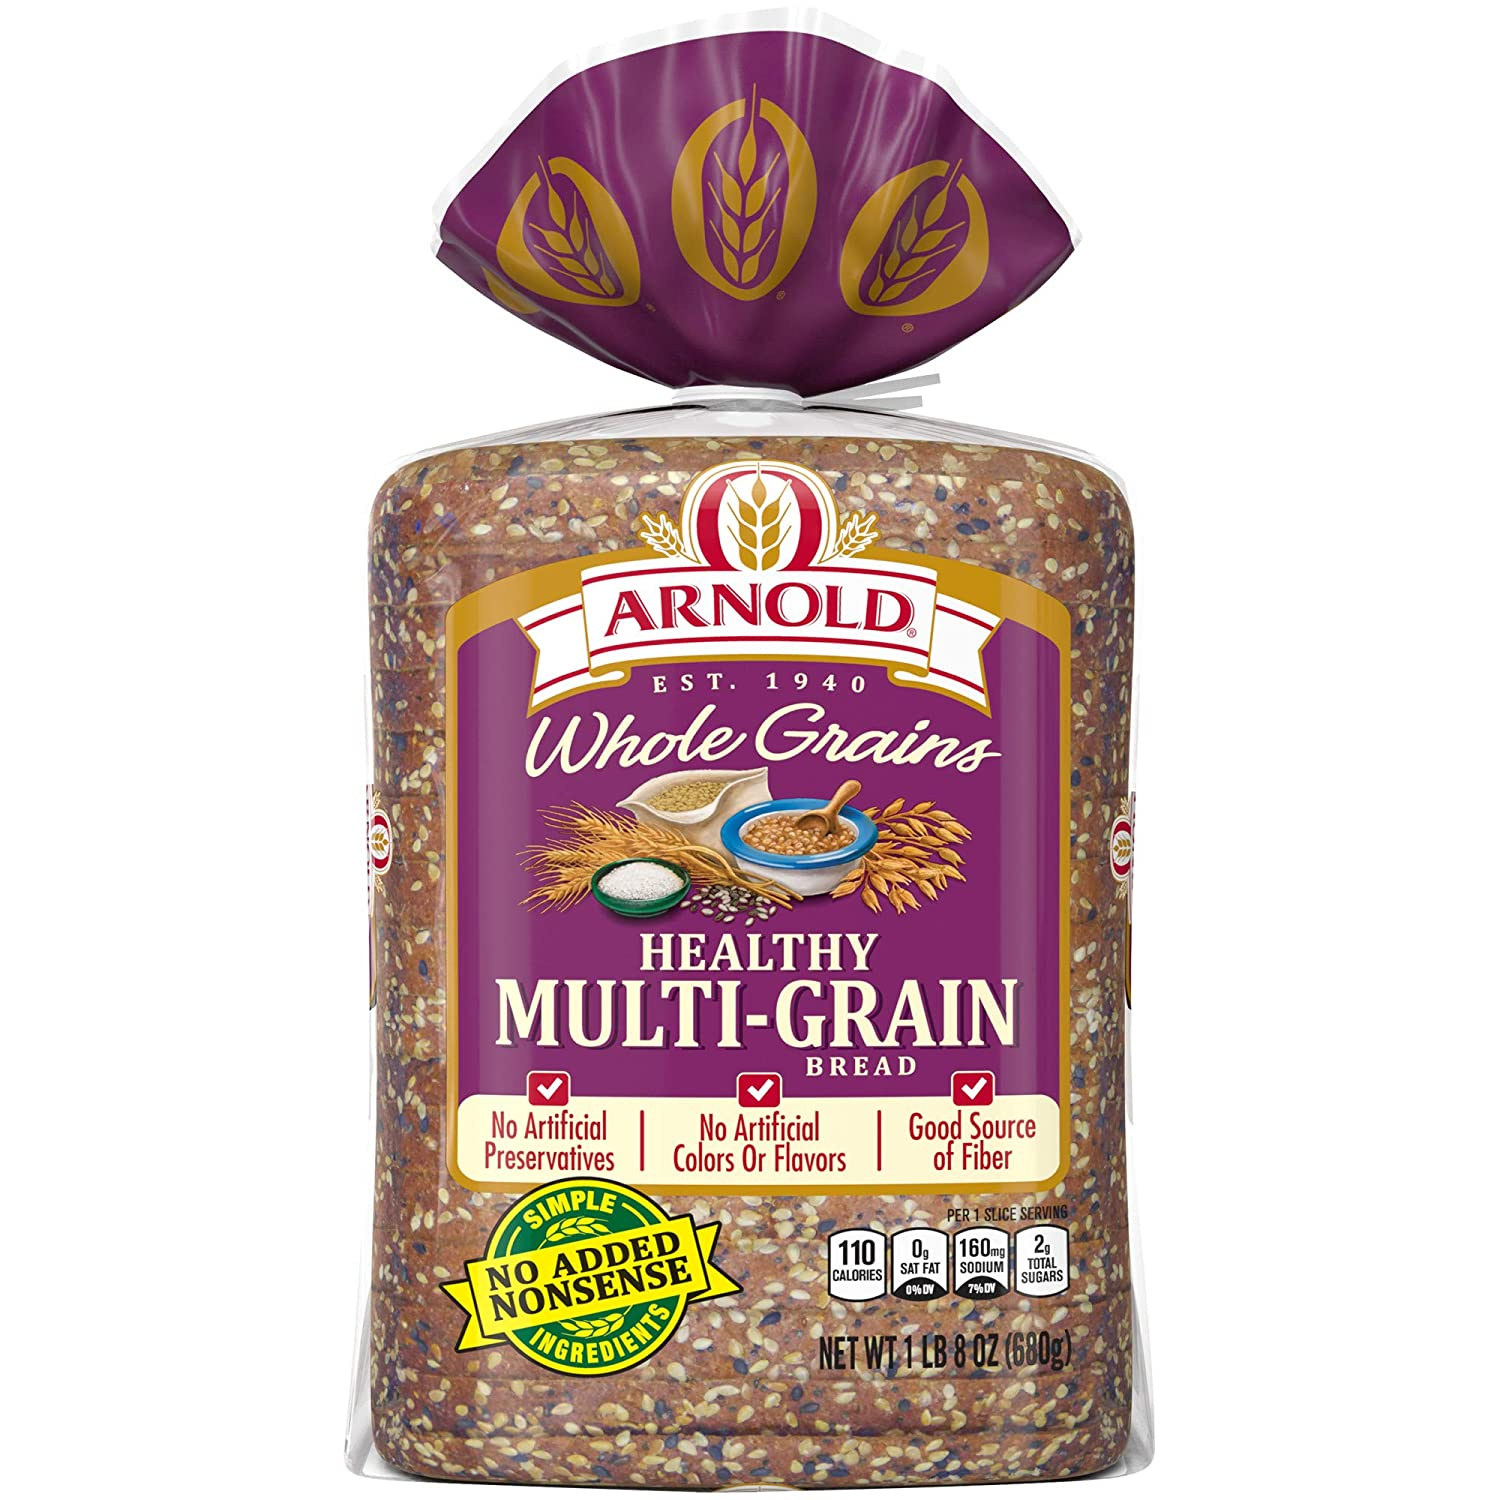 Brownberry Whole Grains Healthy Multi-Grain Bread, Baked with Simple Ingredients, 24 oz